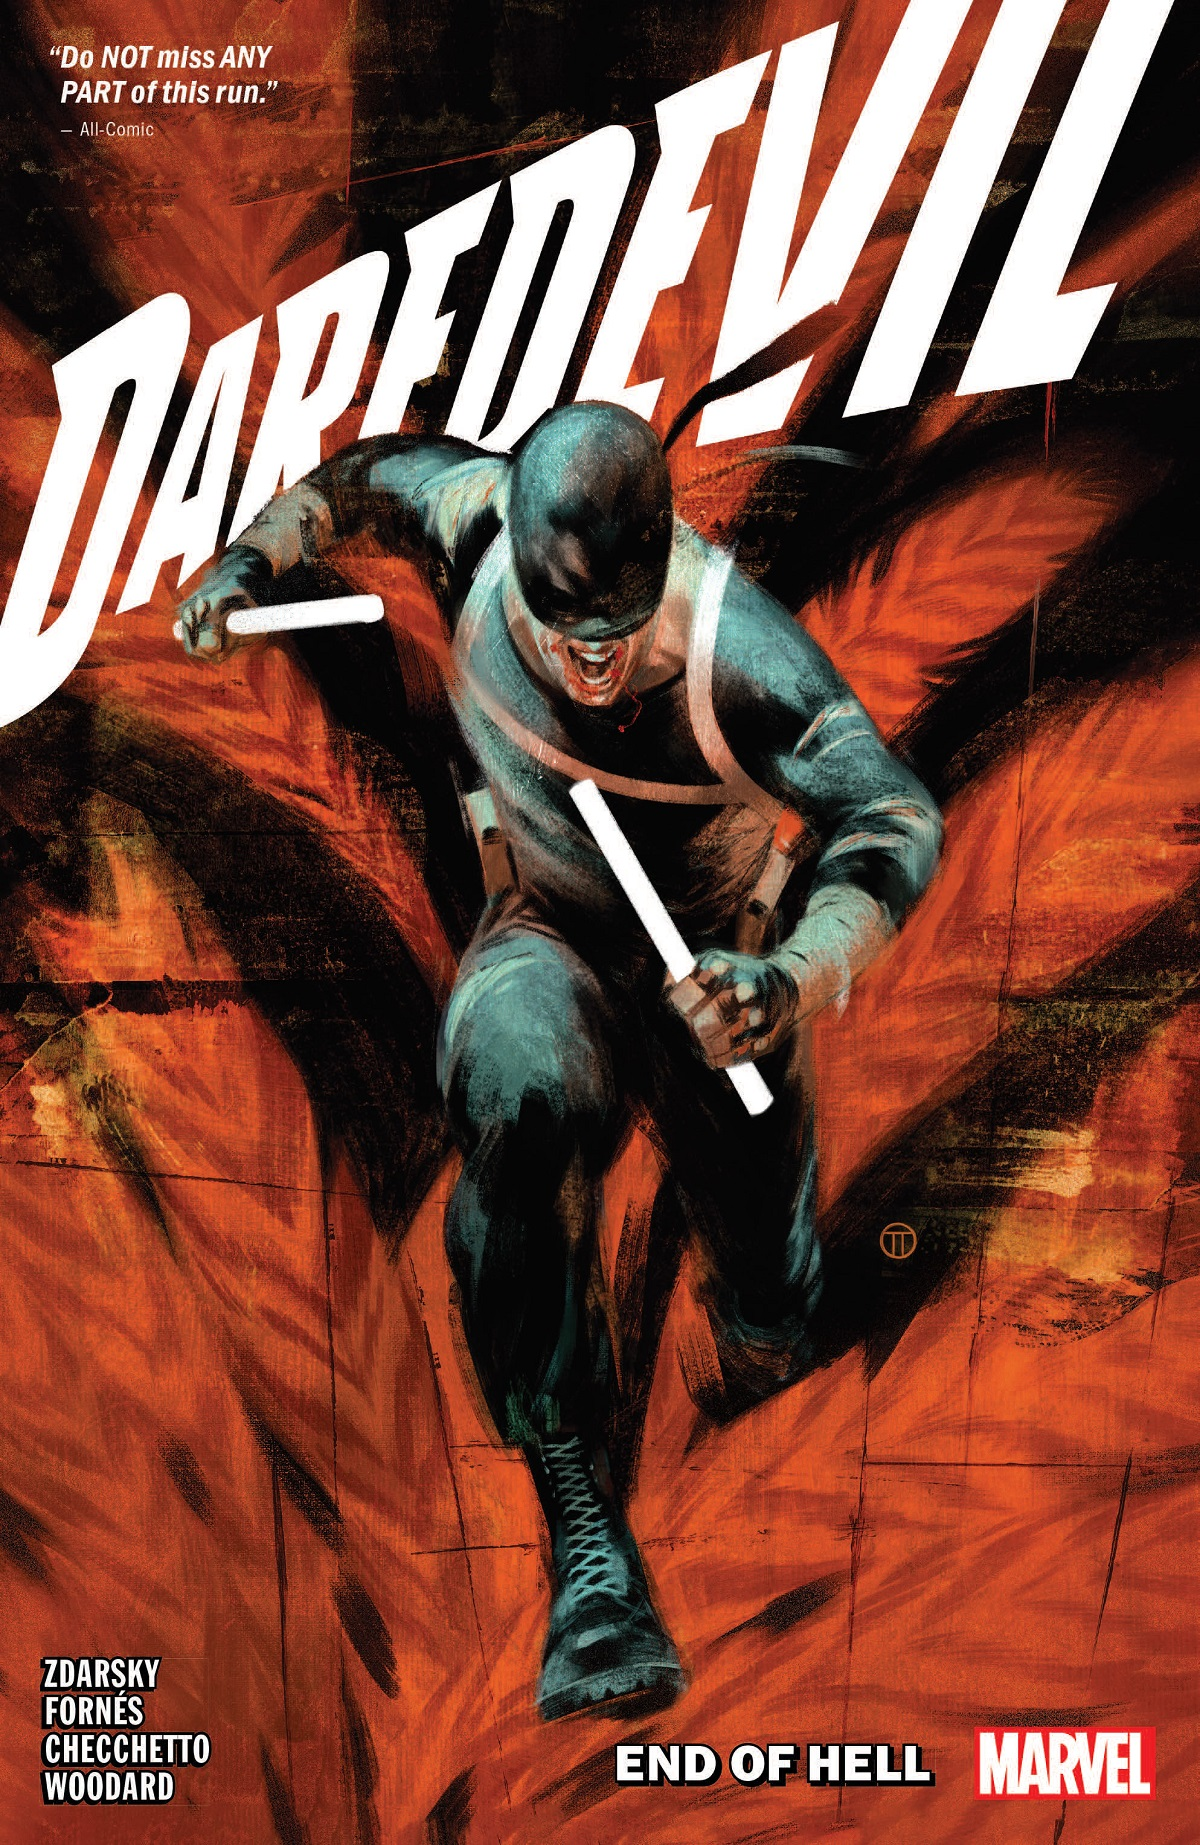 Daredevil by Chip Zdarsky Vol. 4: End Of Hell (Trade Paperback)